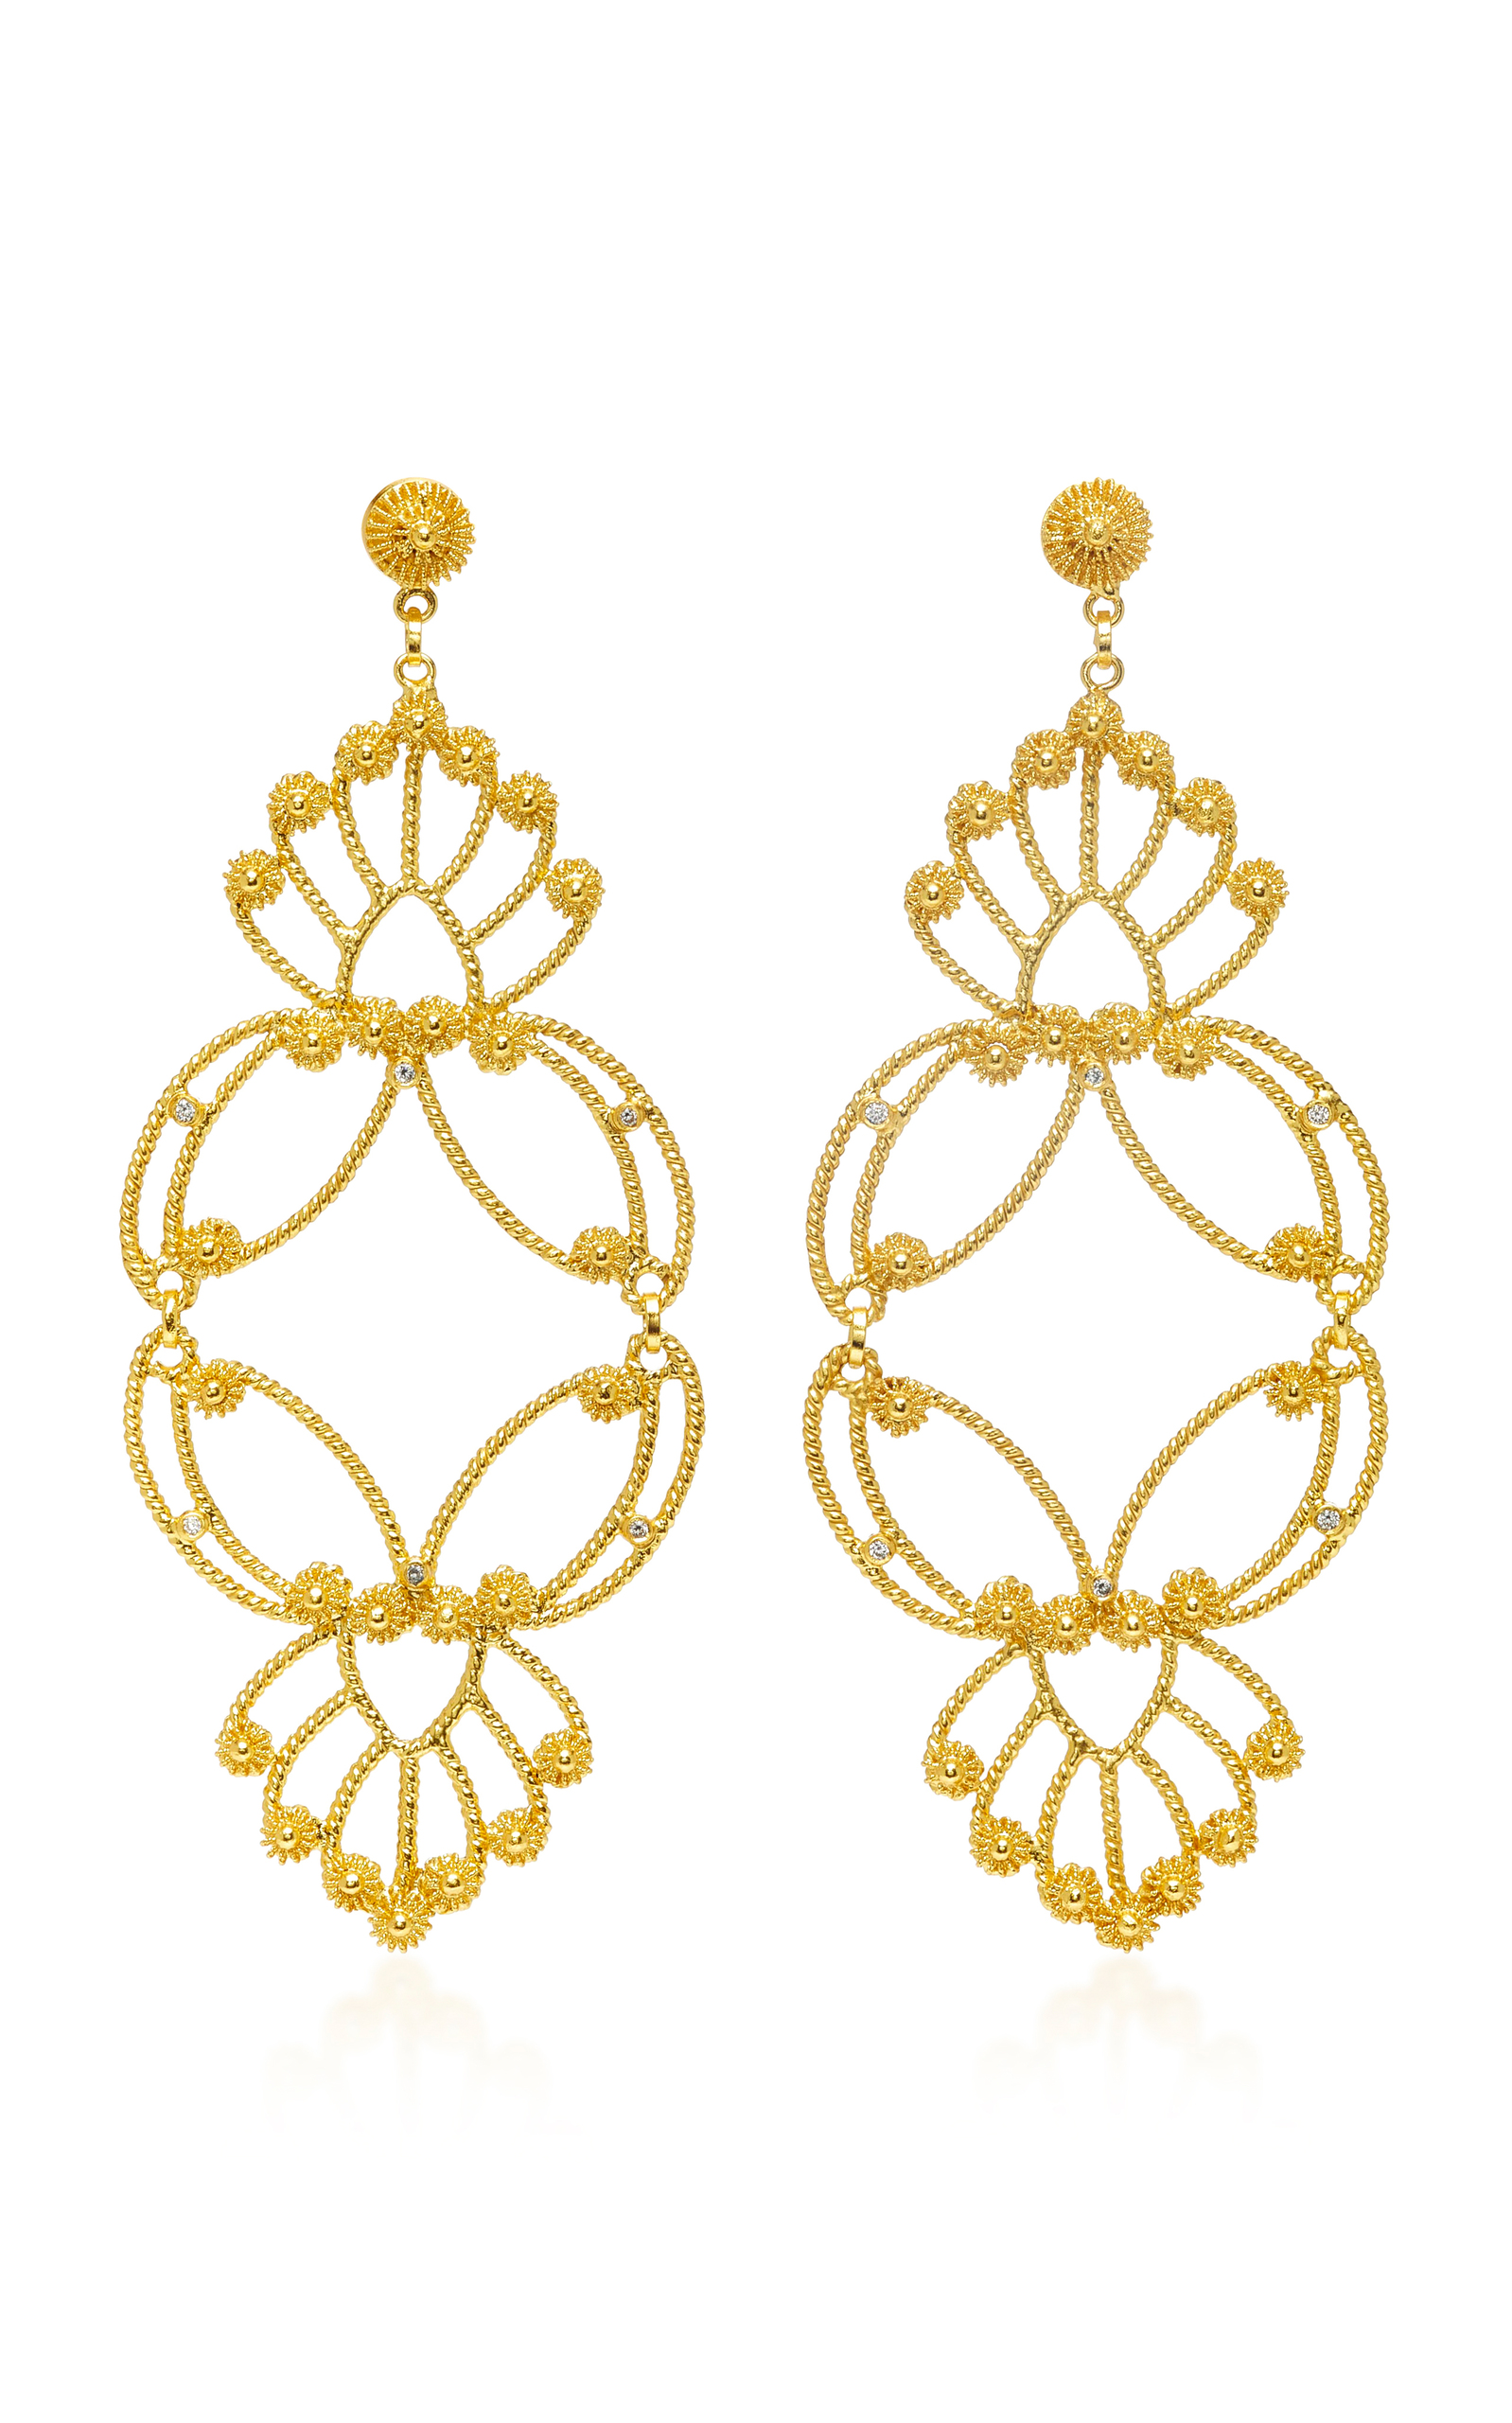 jewelry antiques product diamond image binenbaum earrings gold